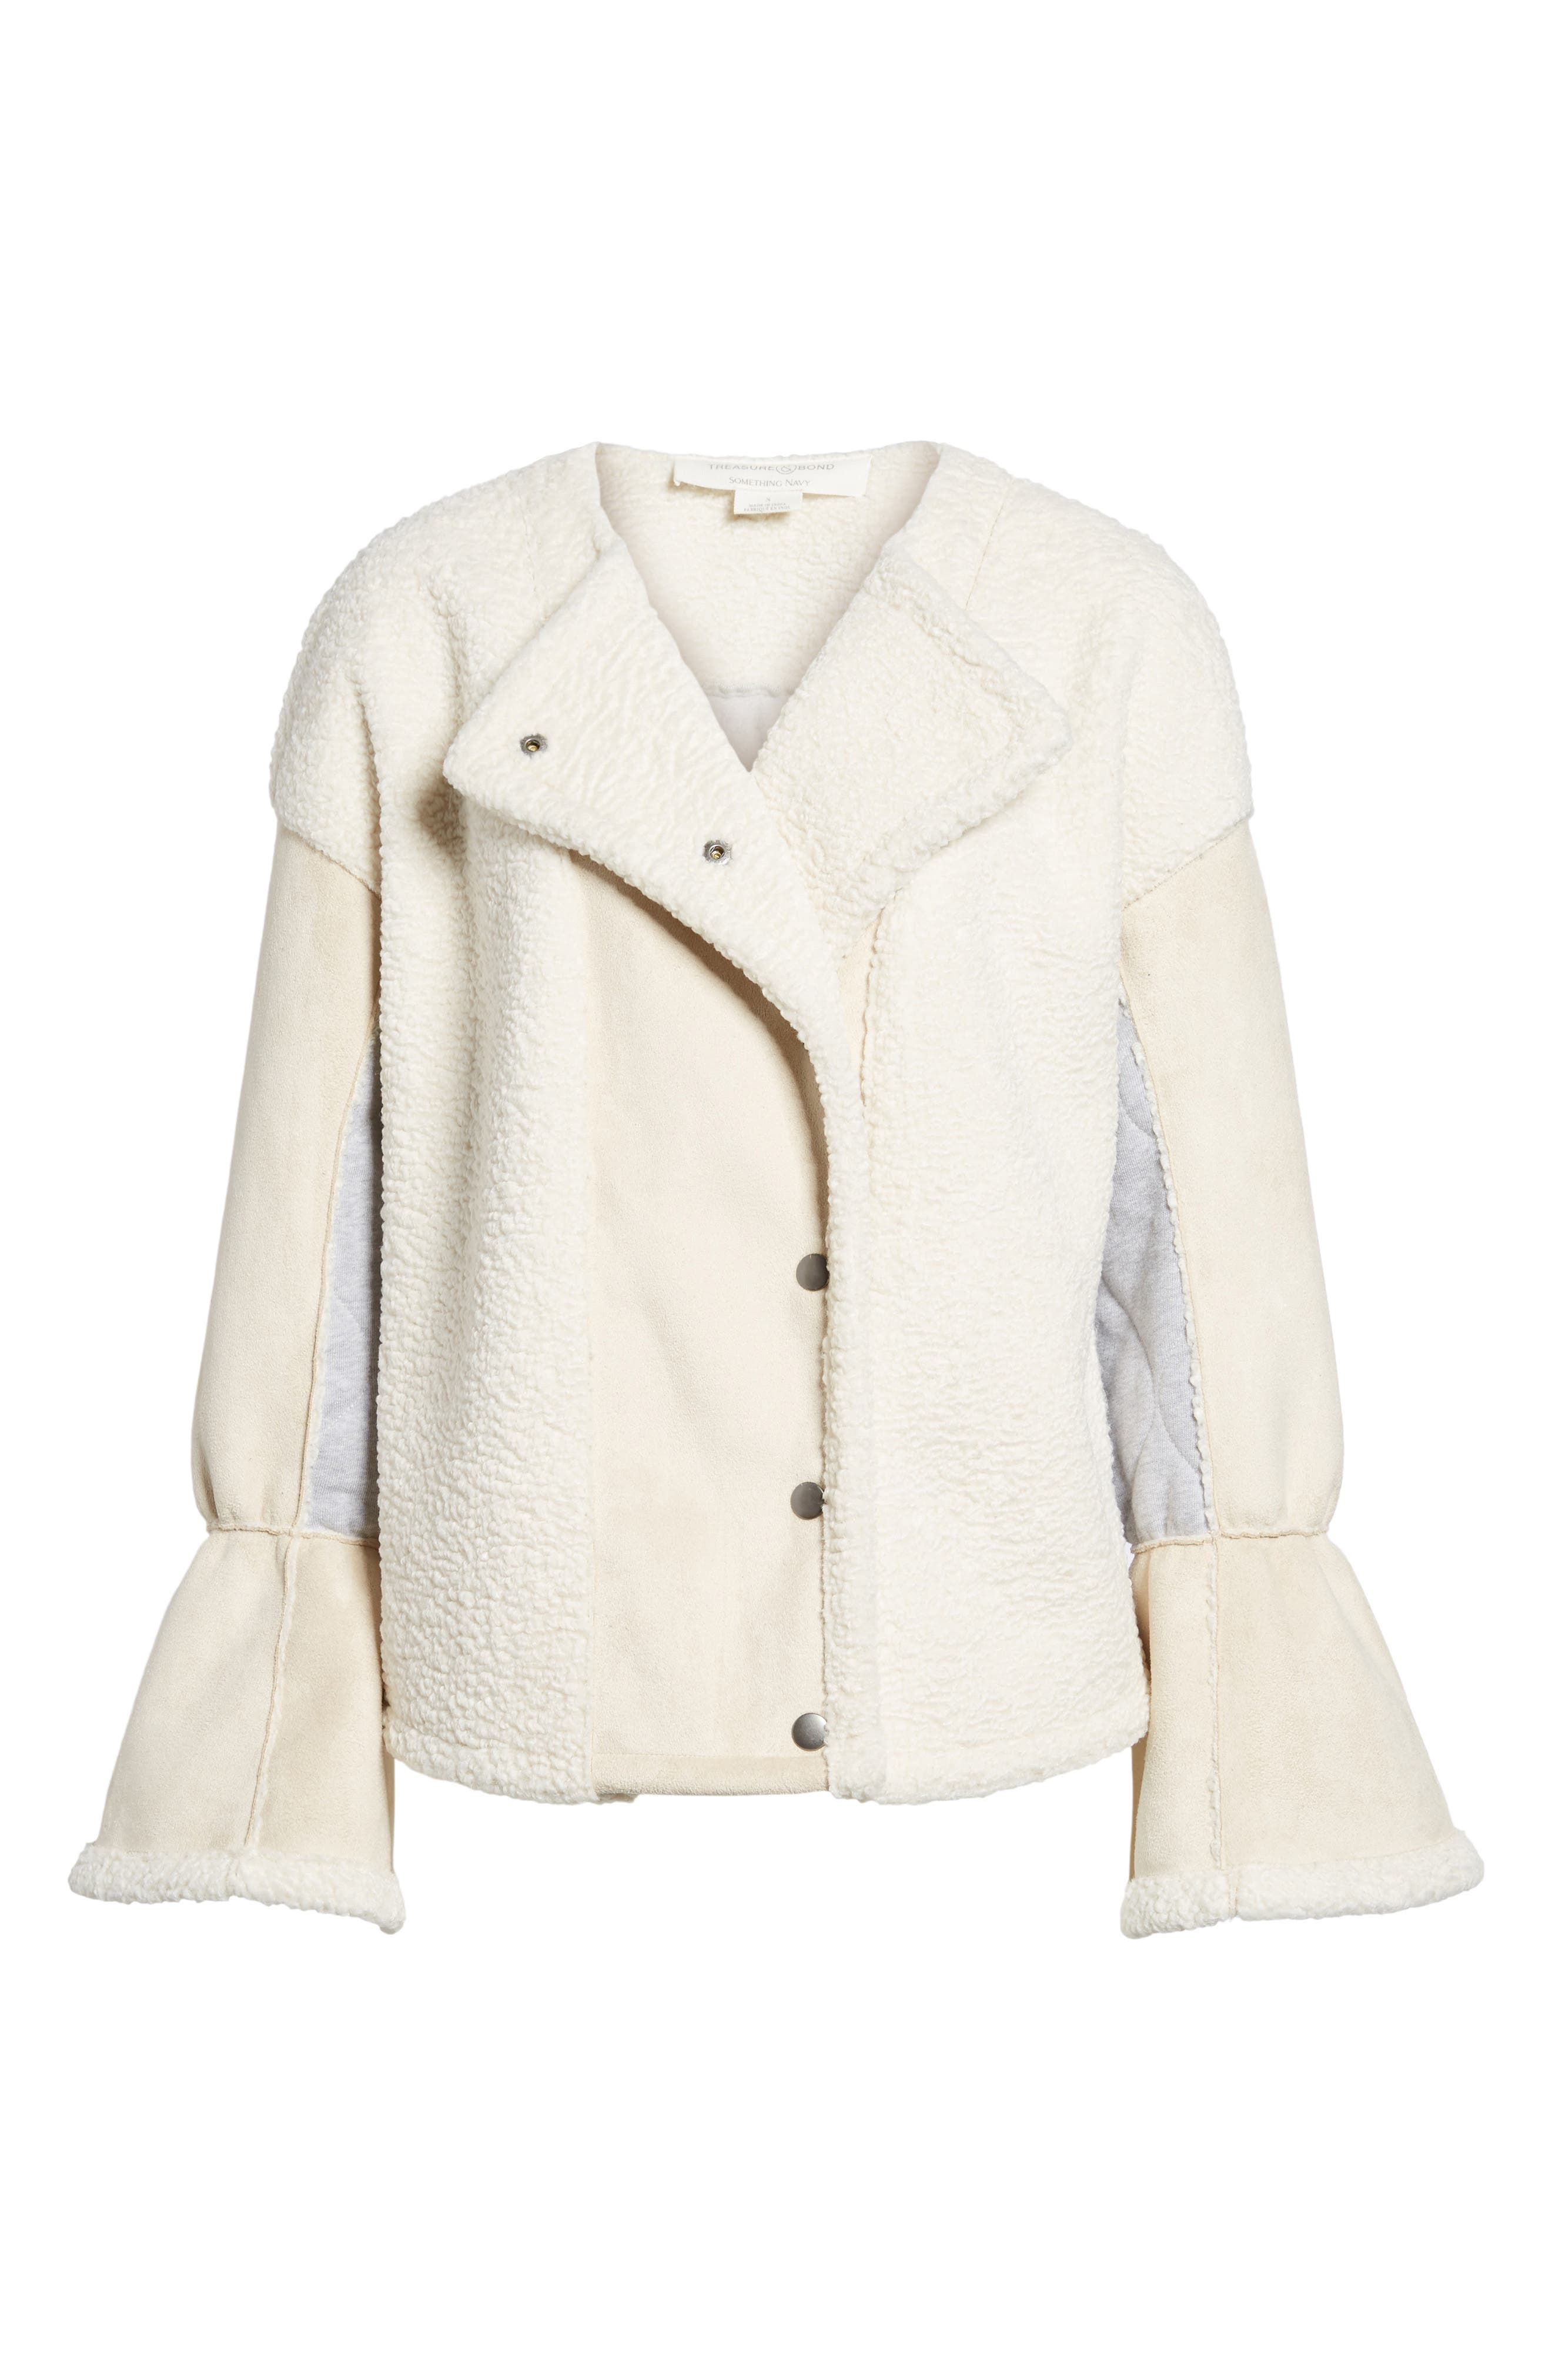 x Something Navy Bell Sleeve Faux Shearling Jacket,                             Alternate thumbnail 5, color,                             900